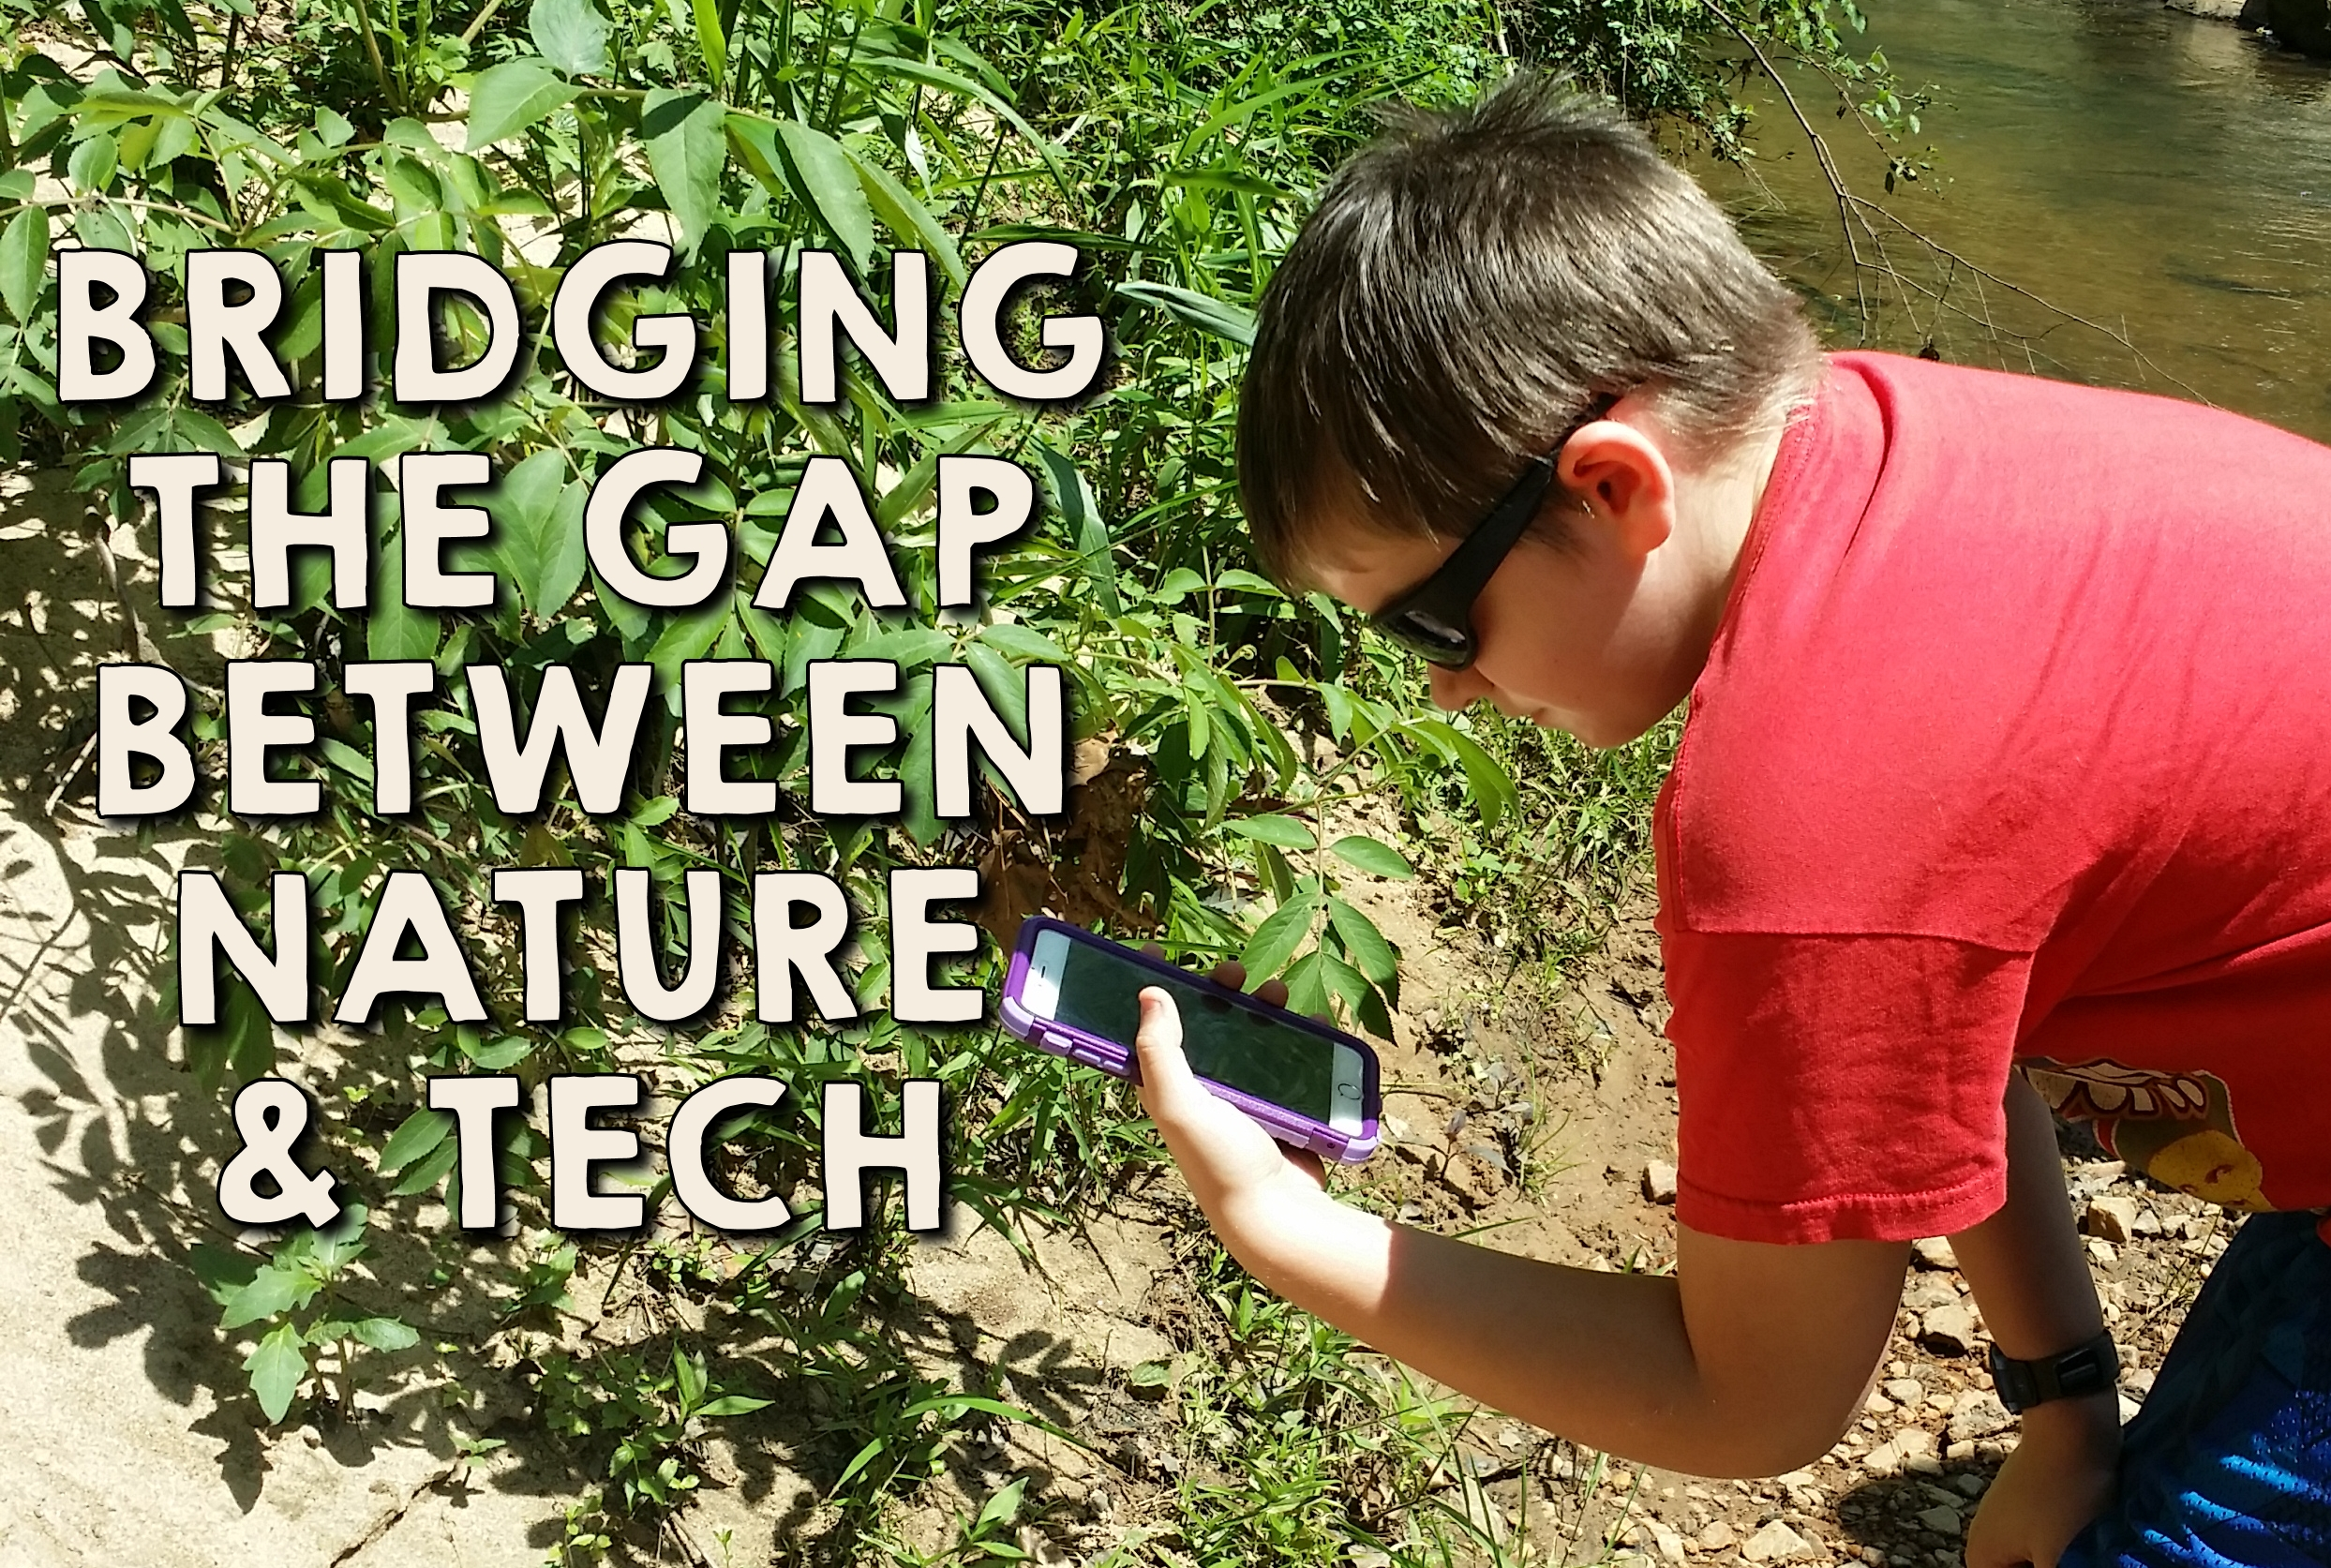 Bridging the Gap Between Nature and Tech